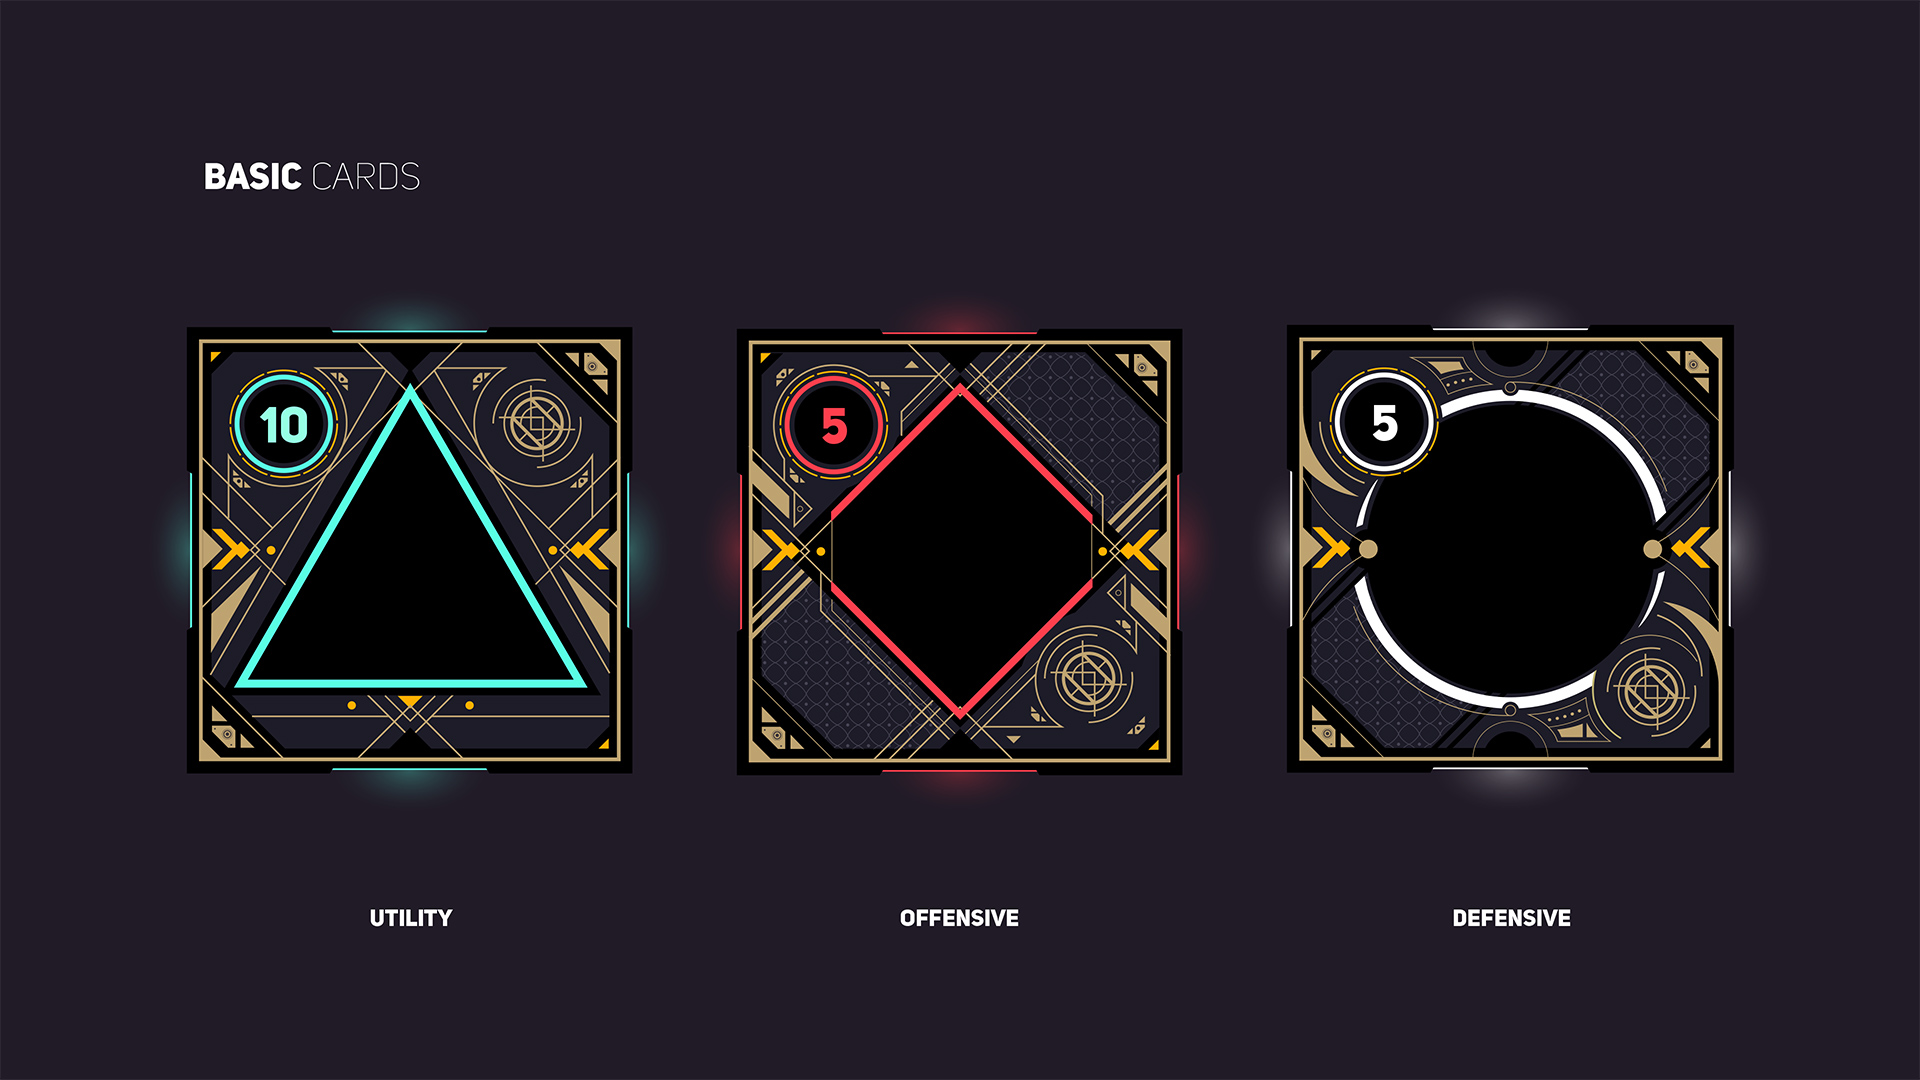 EPIC_Cards_05